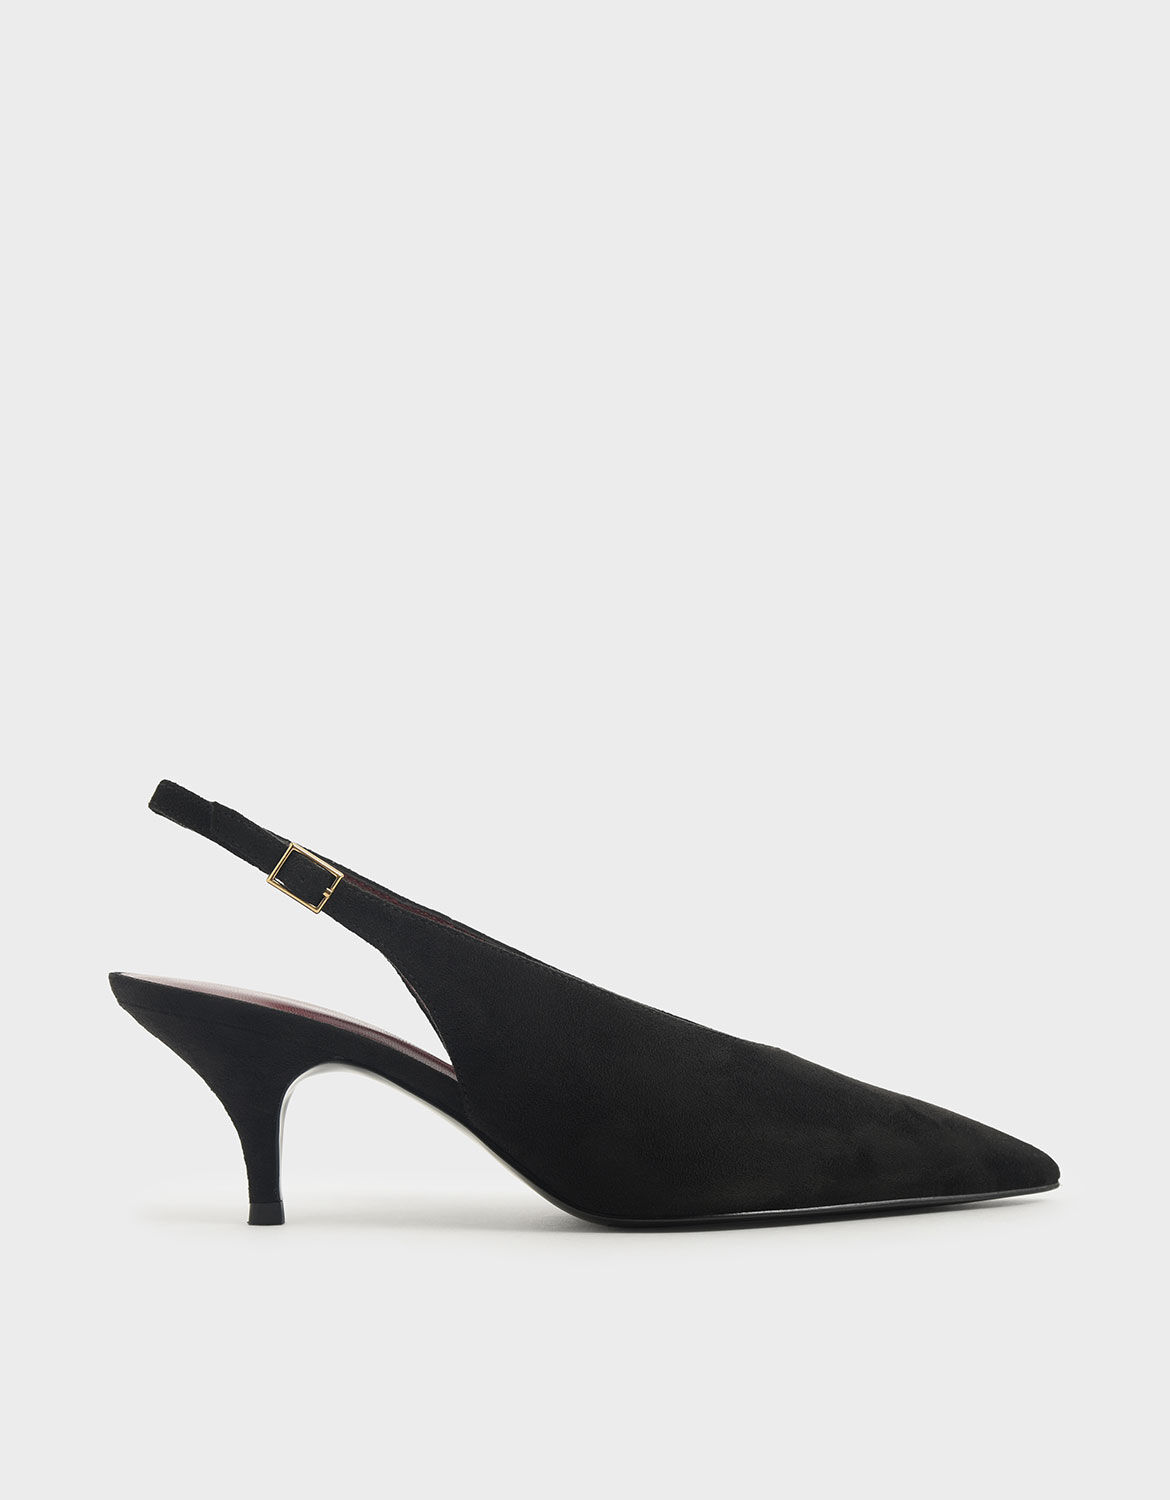 Black Textured Textured Pointed Toe